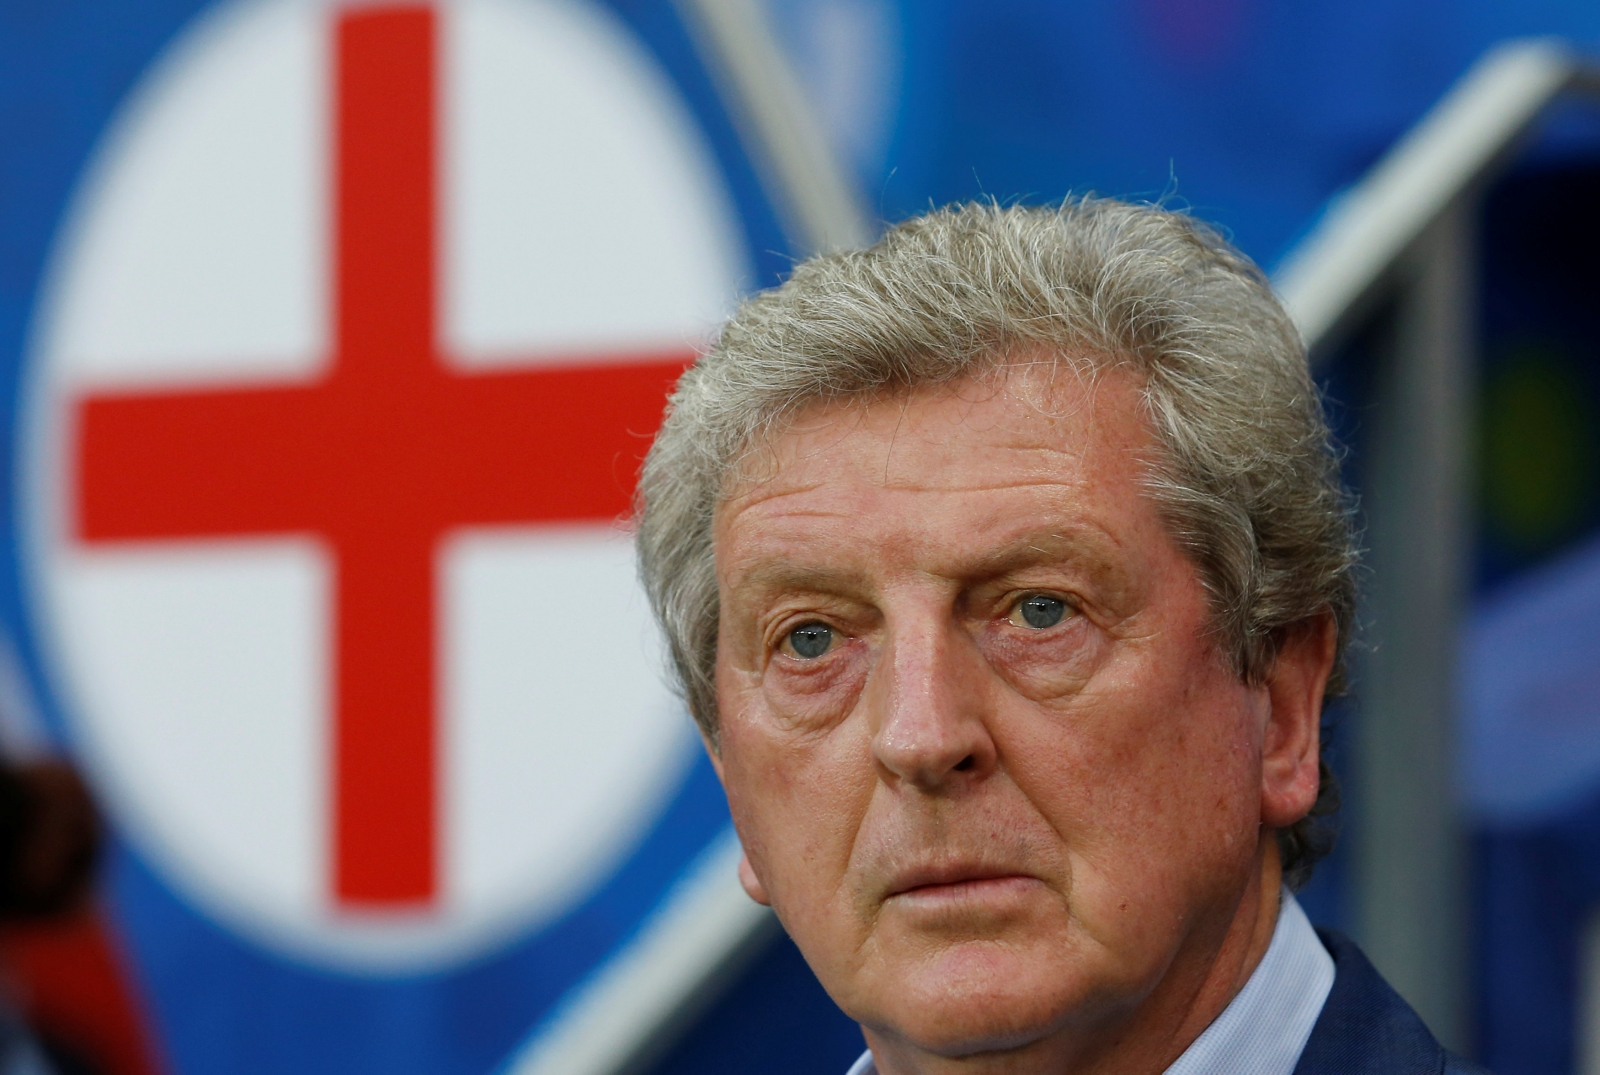 Roy Hodgson resigns England post after humiliating Euro 2016 elimination to Iceland